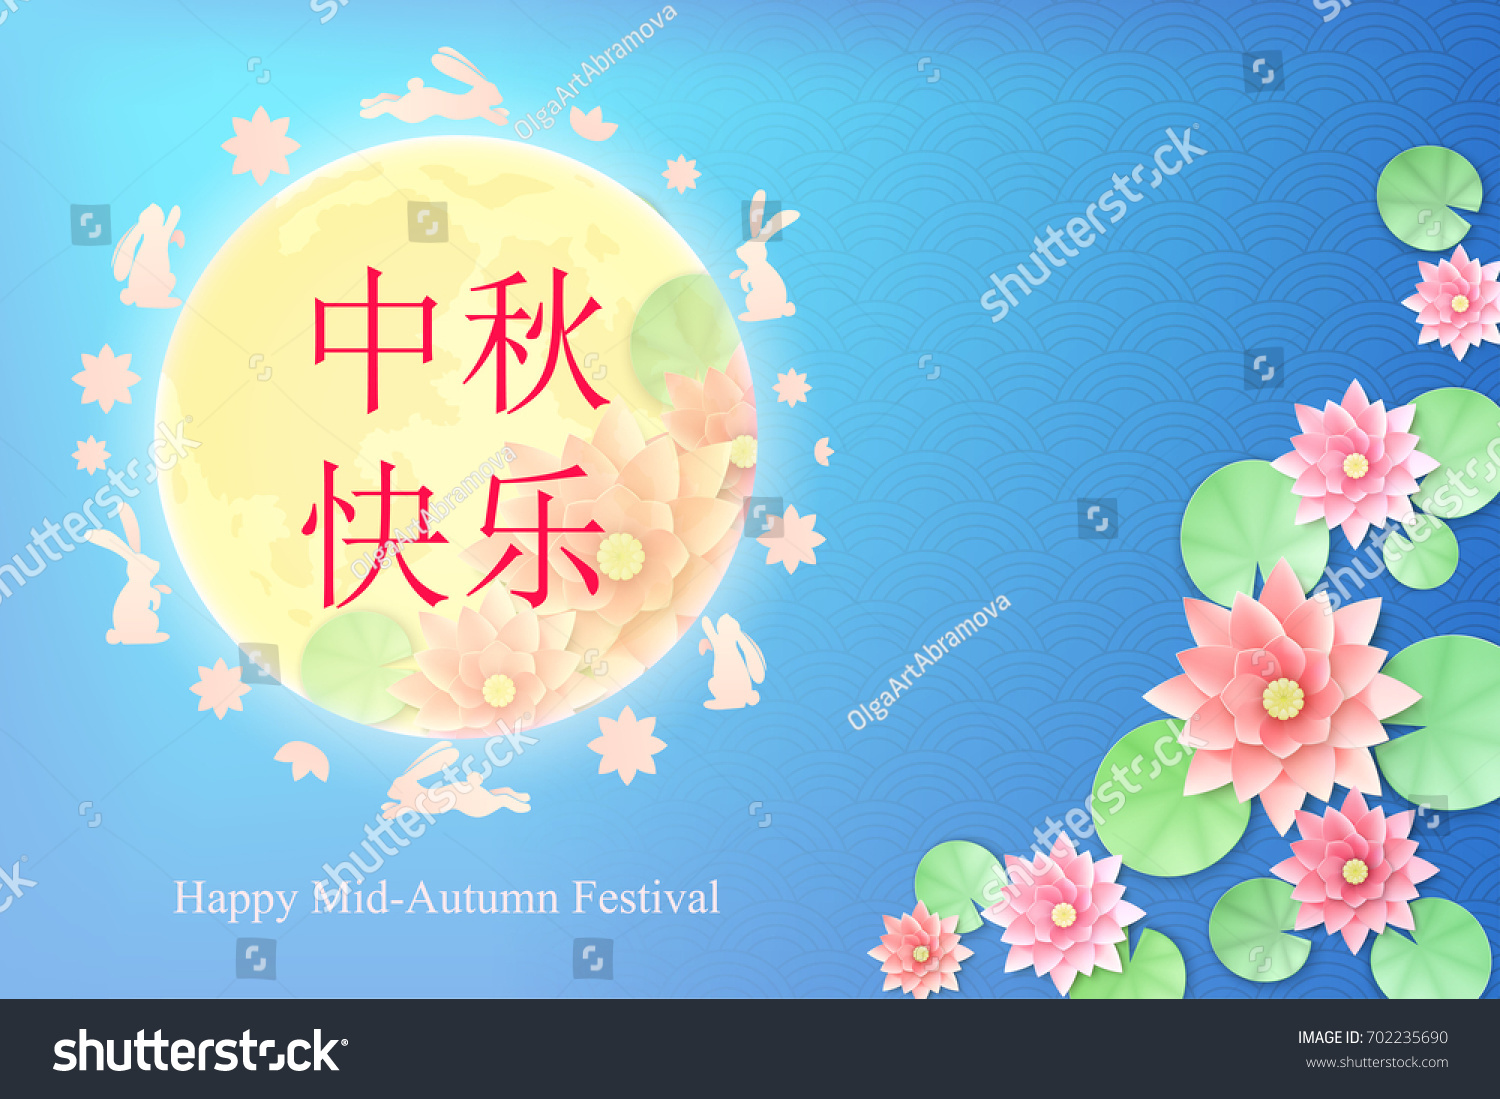 Chinese mid autumn festival greeting card stock vector 702235690 chinese mid autumn festival greeting card with moon rabbit and flowers chinese hieroglyphs are kristyandbryce Choice Image